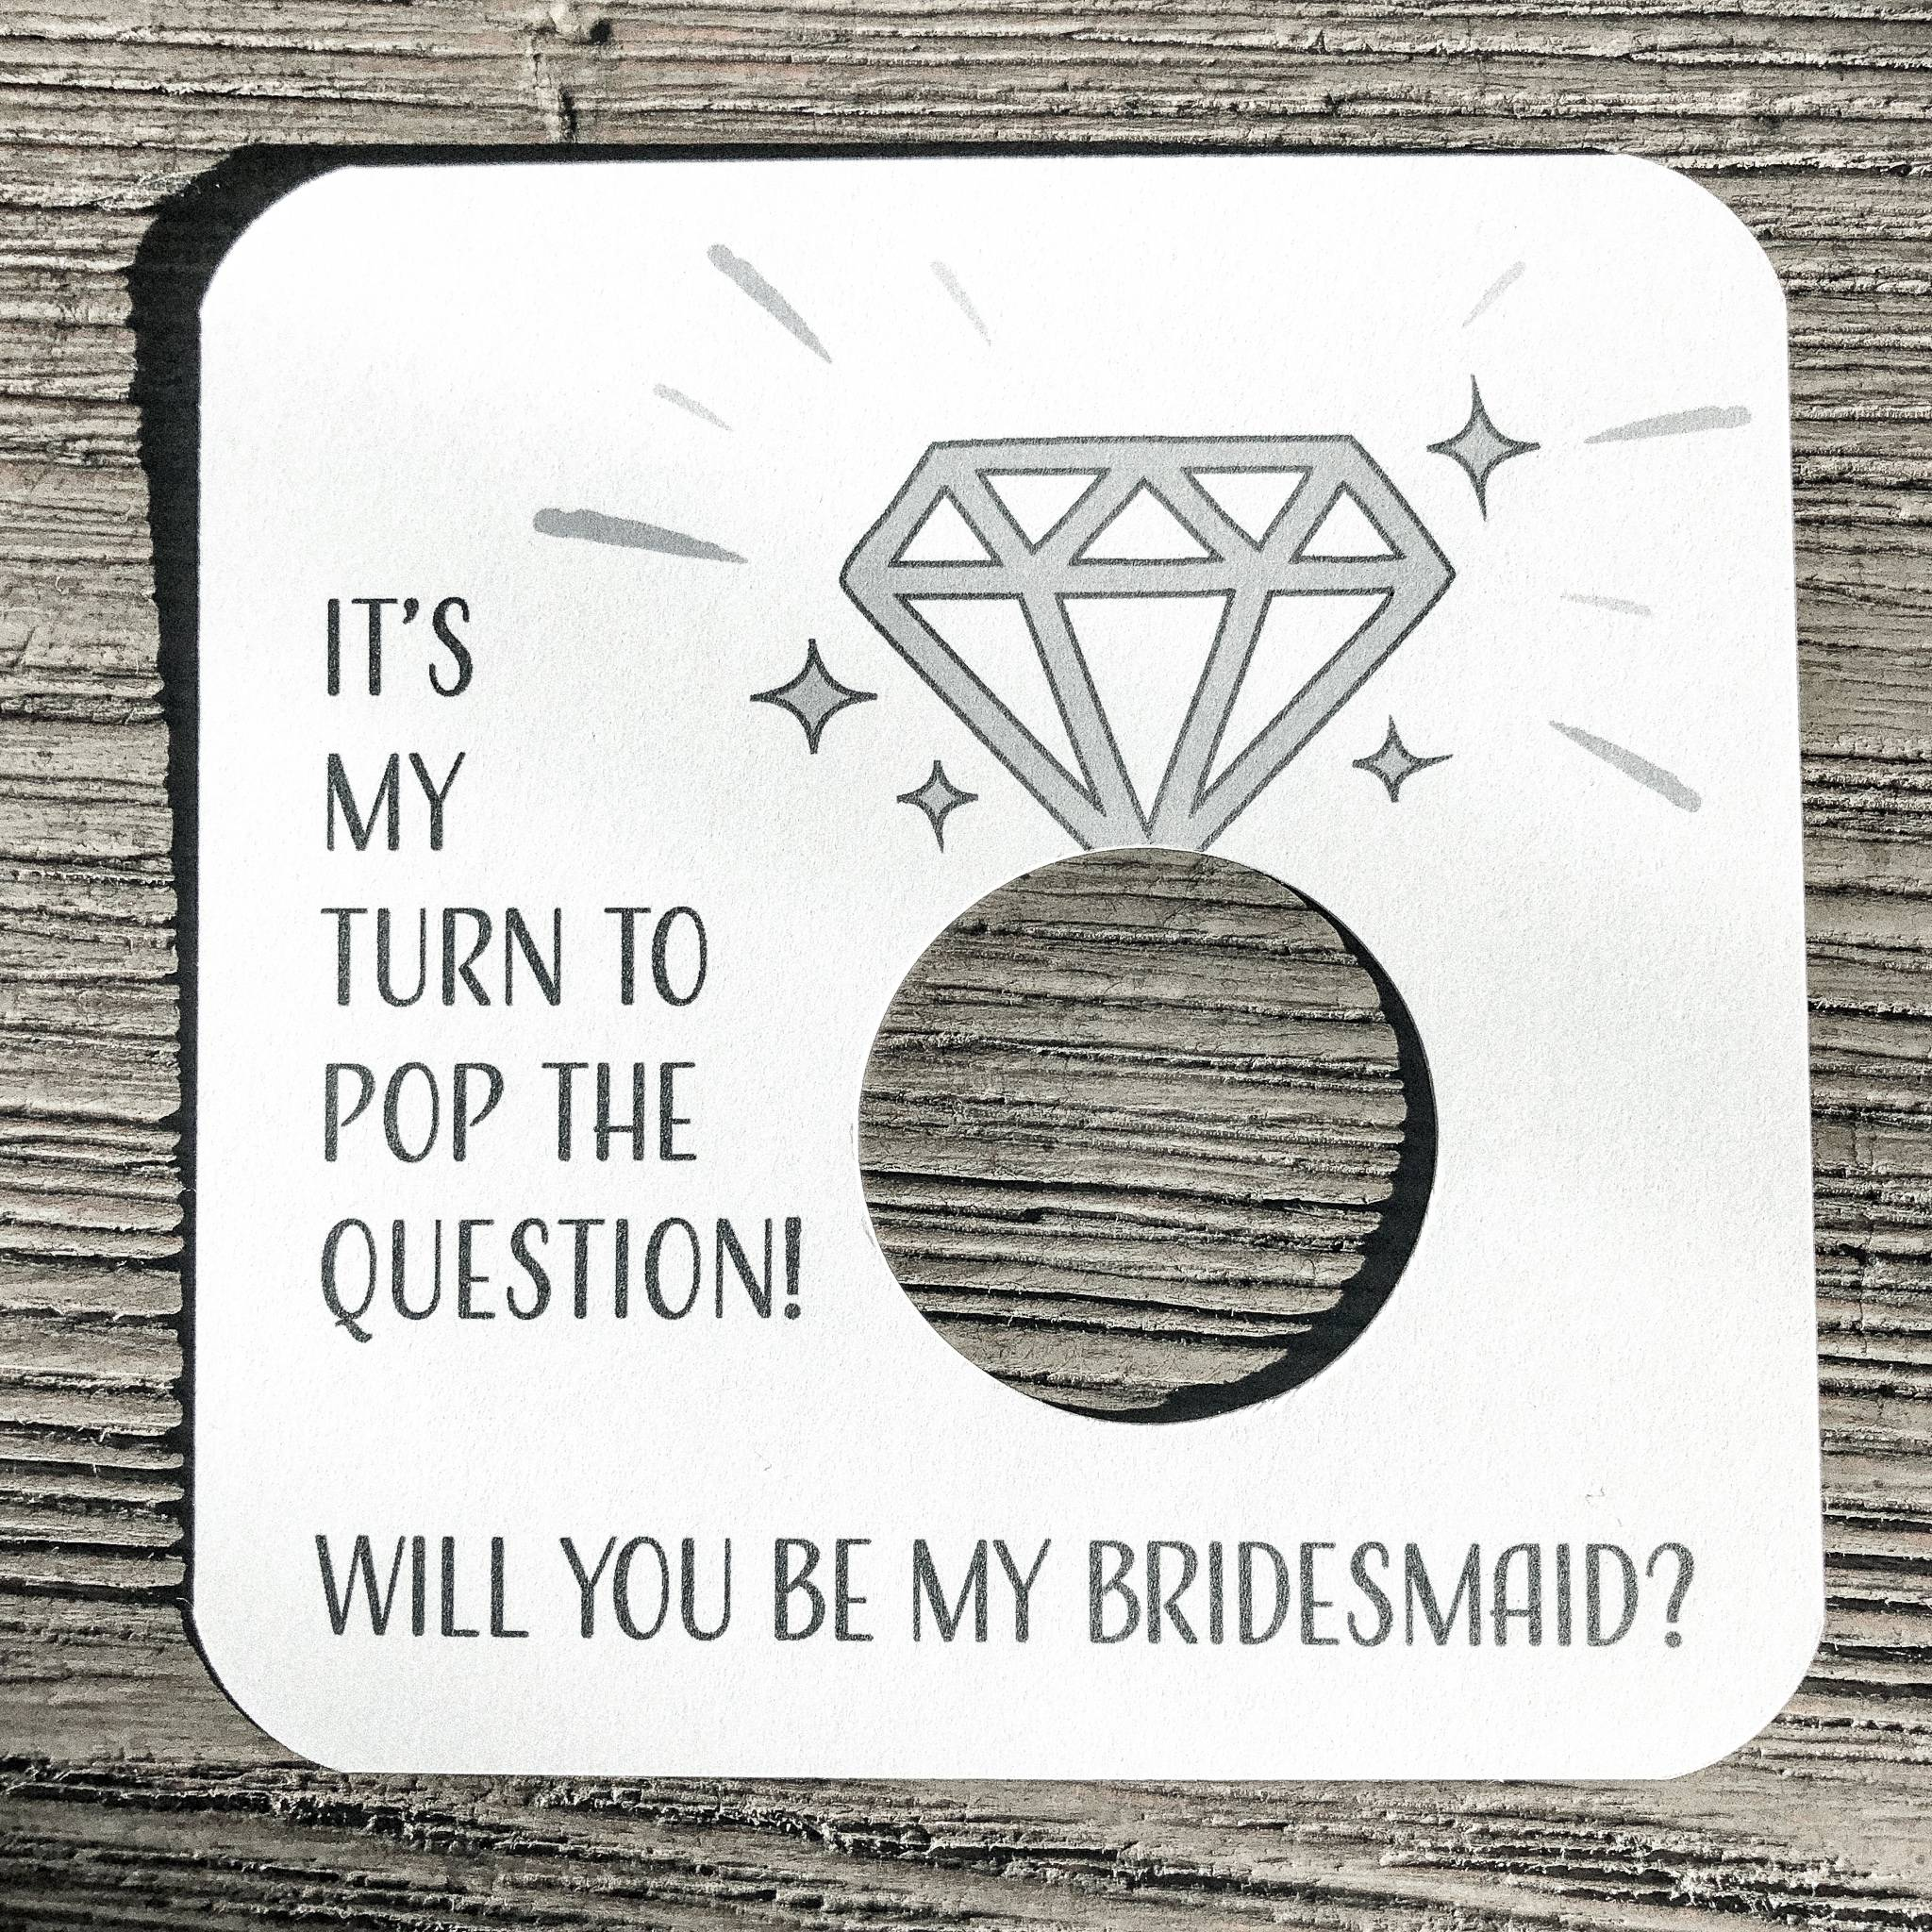 It's my turn to pop the question! Will you be my bridesmaid? Plain white Card stock